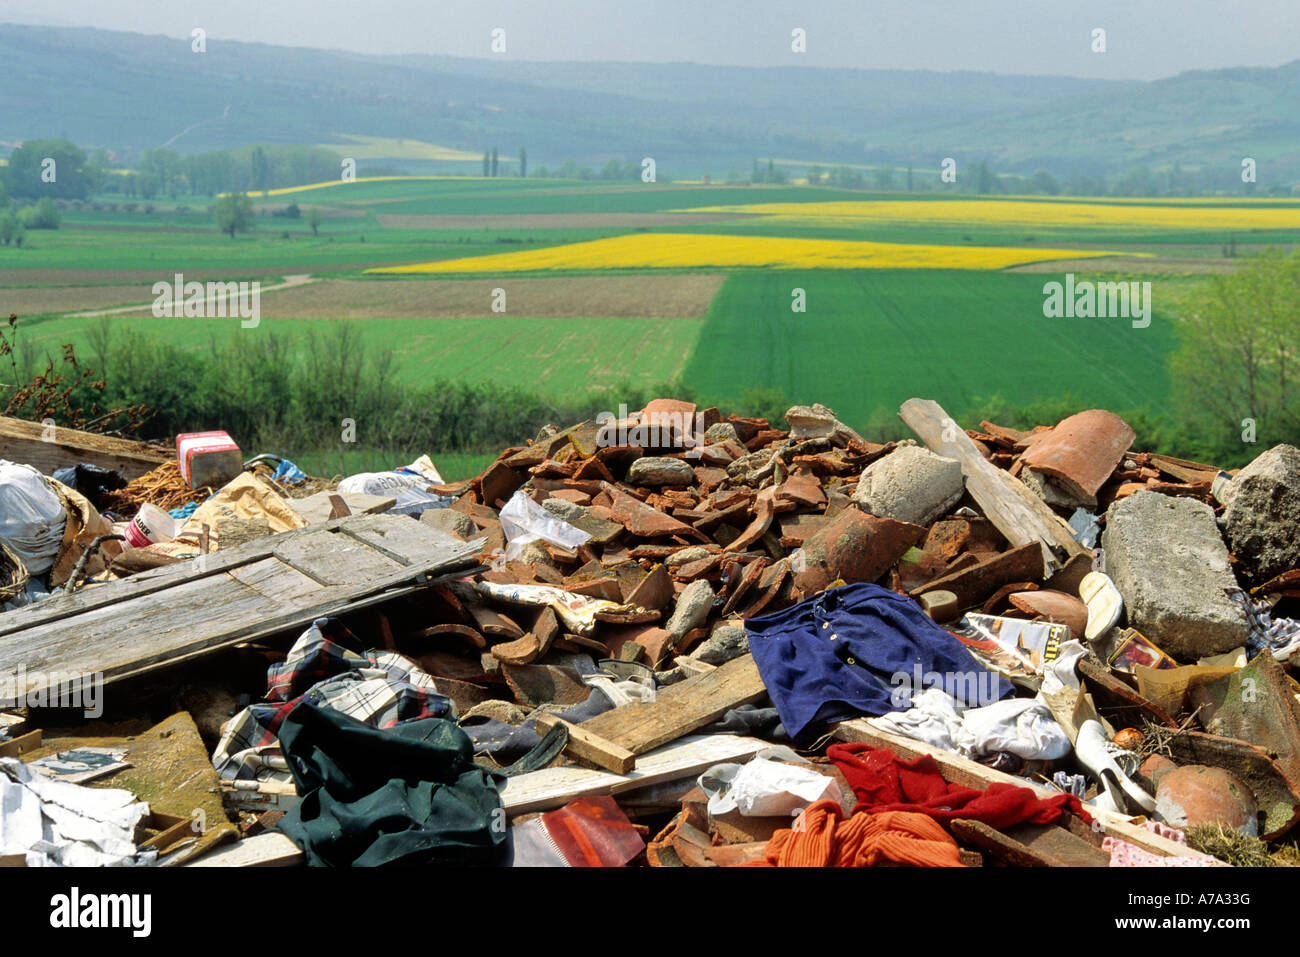 Rubbish tip / landfill site in the countryside - Stock Image